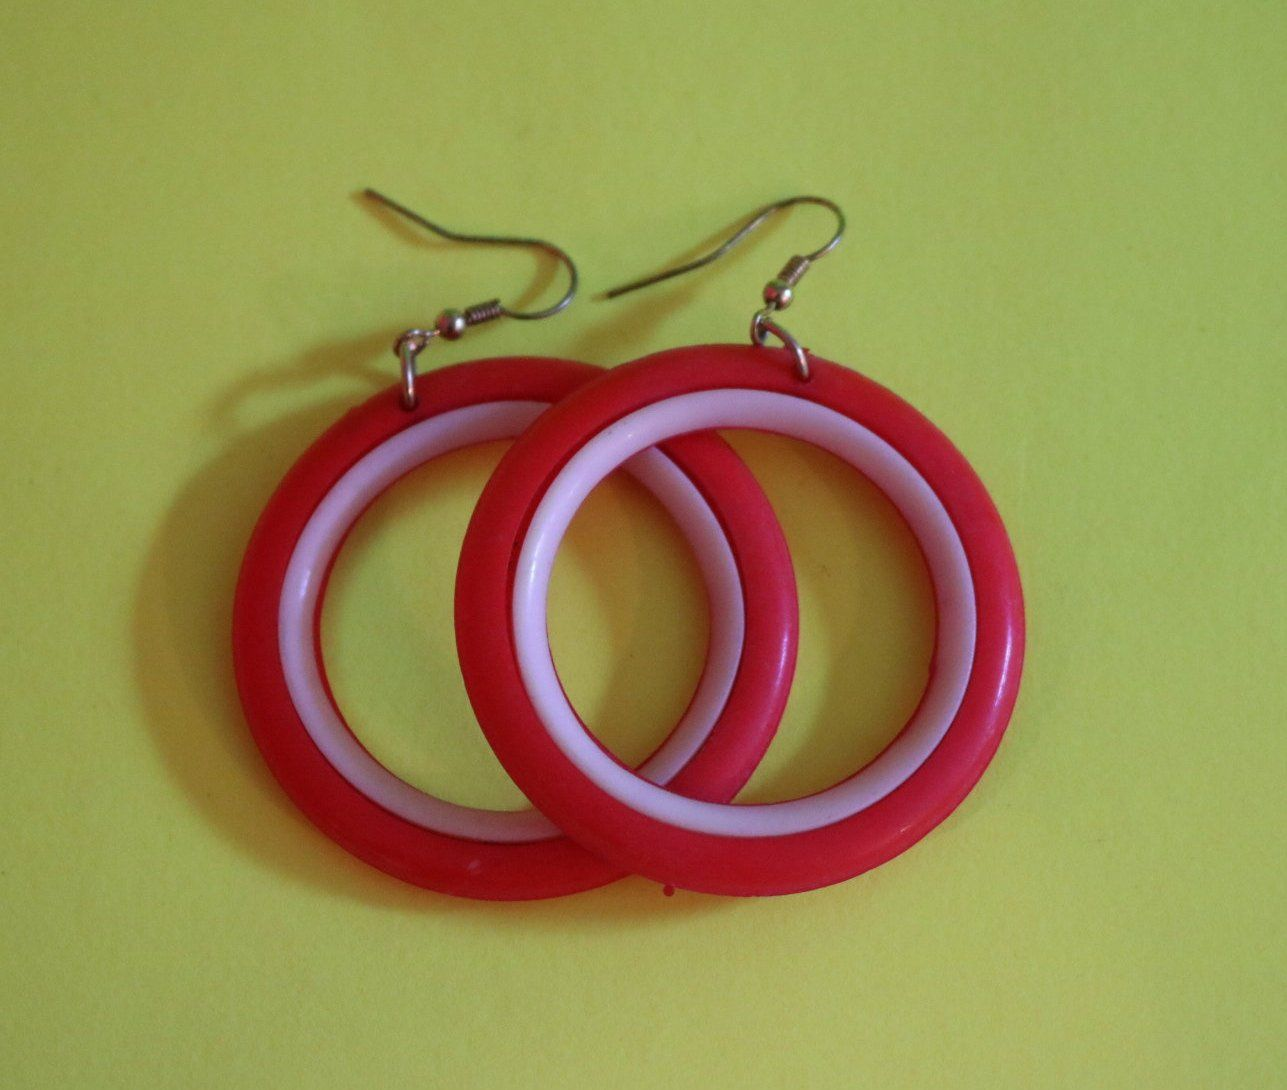 Vintage New Red And White Plastic Earrings By Dersbizarre On Etsy